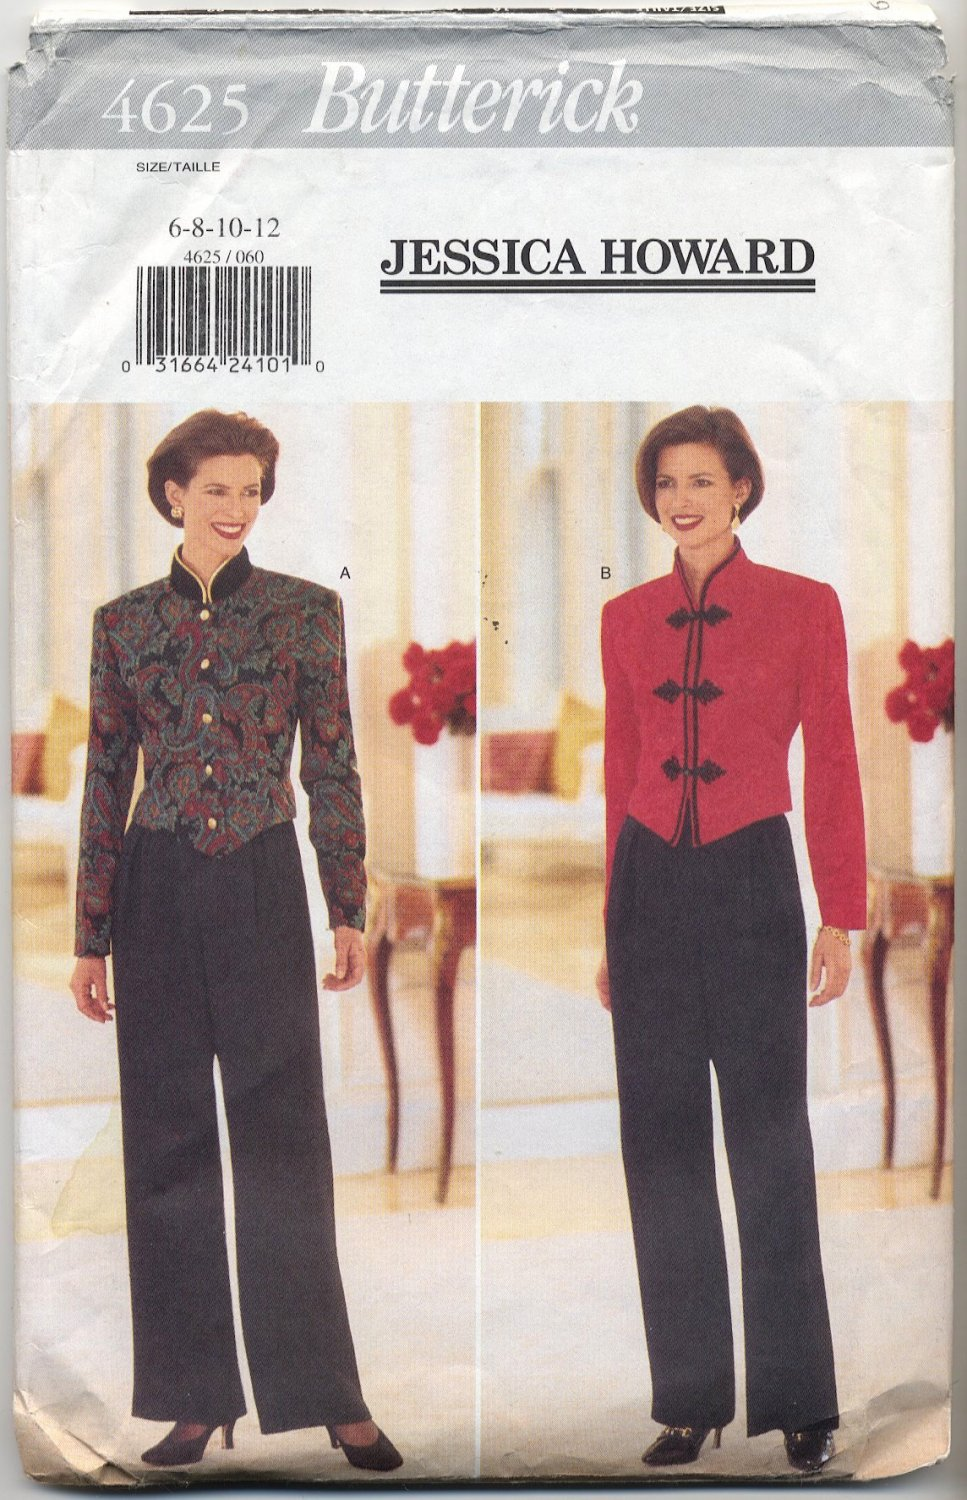 Butterick 4625 Jessica Howard Top & Pants Sewing Pattern Misses' 6 8 10 12 Evening Elegance